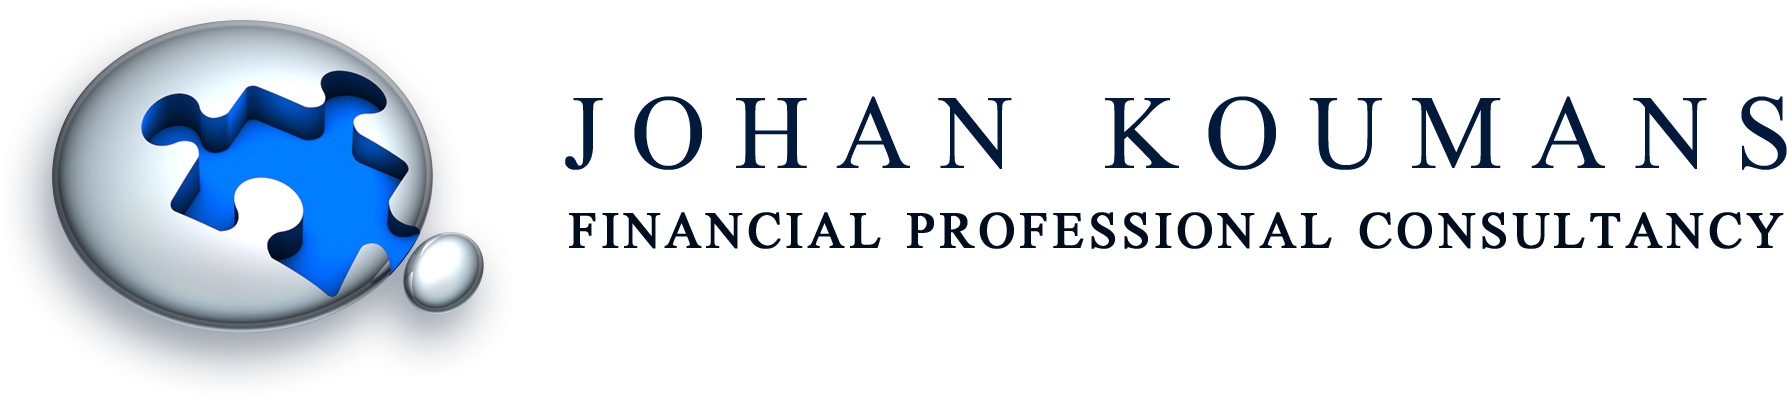 Johan Koumans Financial Professional Consultancy